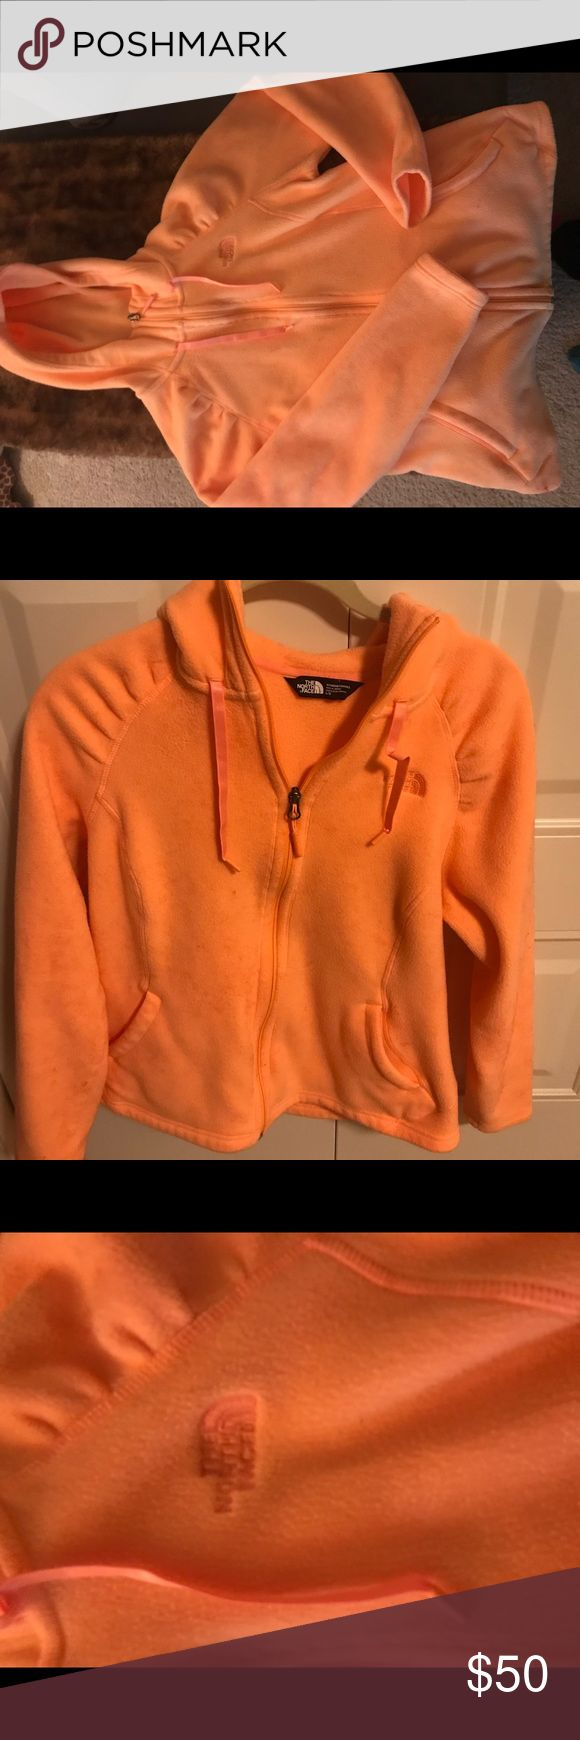 North Face Fleece Never worn Ladies North Face fleece jacket North Face Jackets & Coats